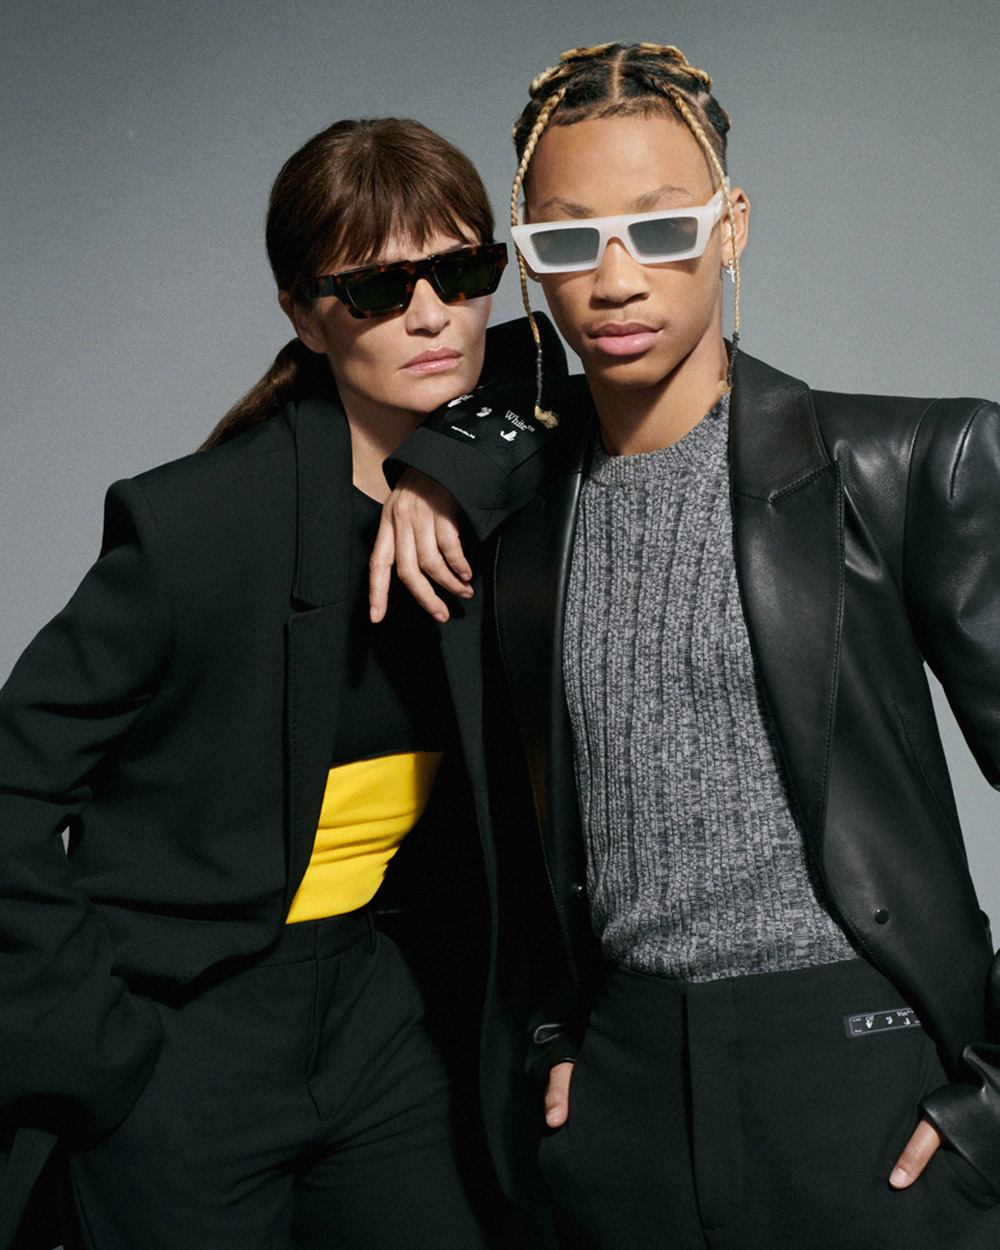 Off-White's first full eyewear collection campaign